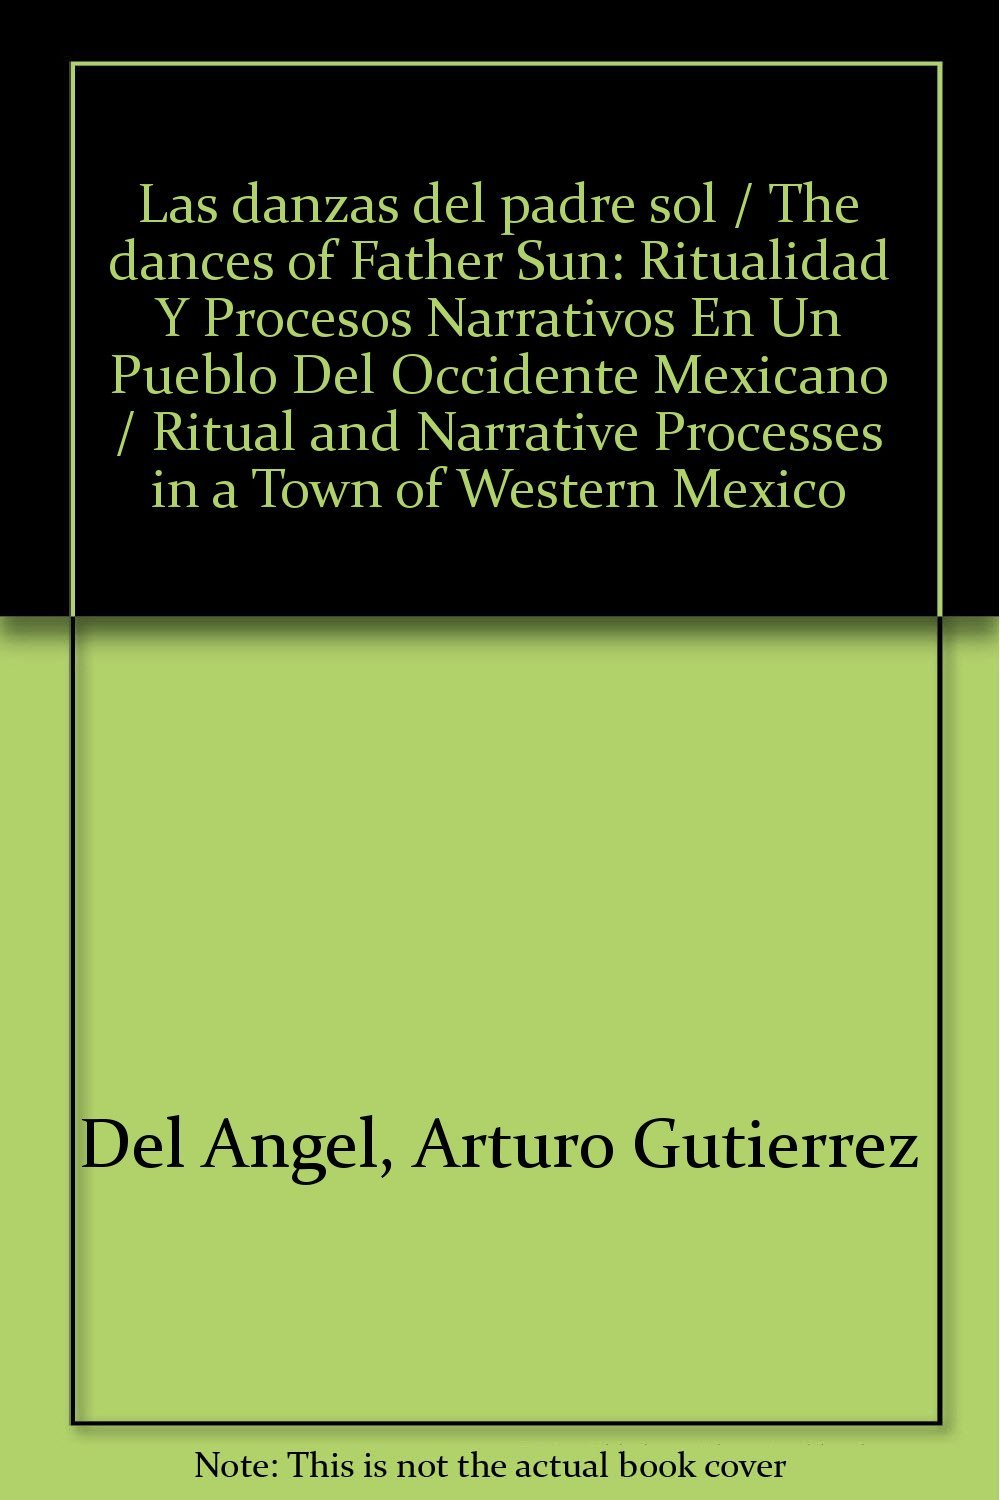 Read Online Las danzas del padre sol / The dances of Father Sun: Ritualidad Y Procesos Narrativos En Un Pueblo Del Occidente Mexicano / Ritual and Narrative Processes in a Town of Western Mexico (Spanish Edition) ebook